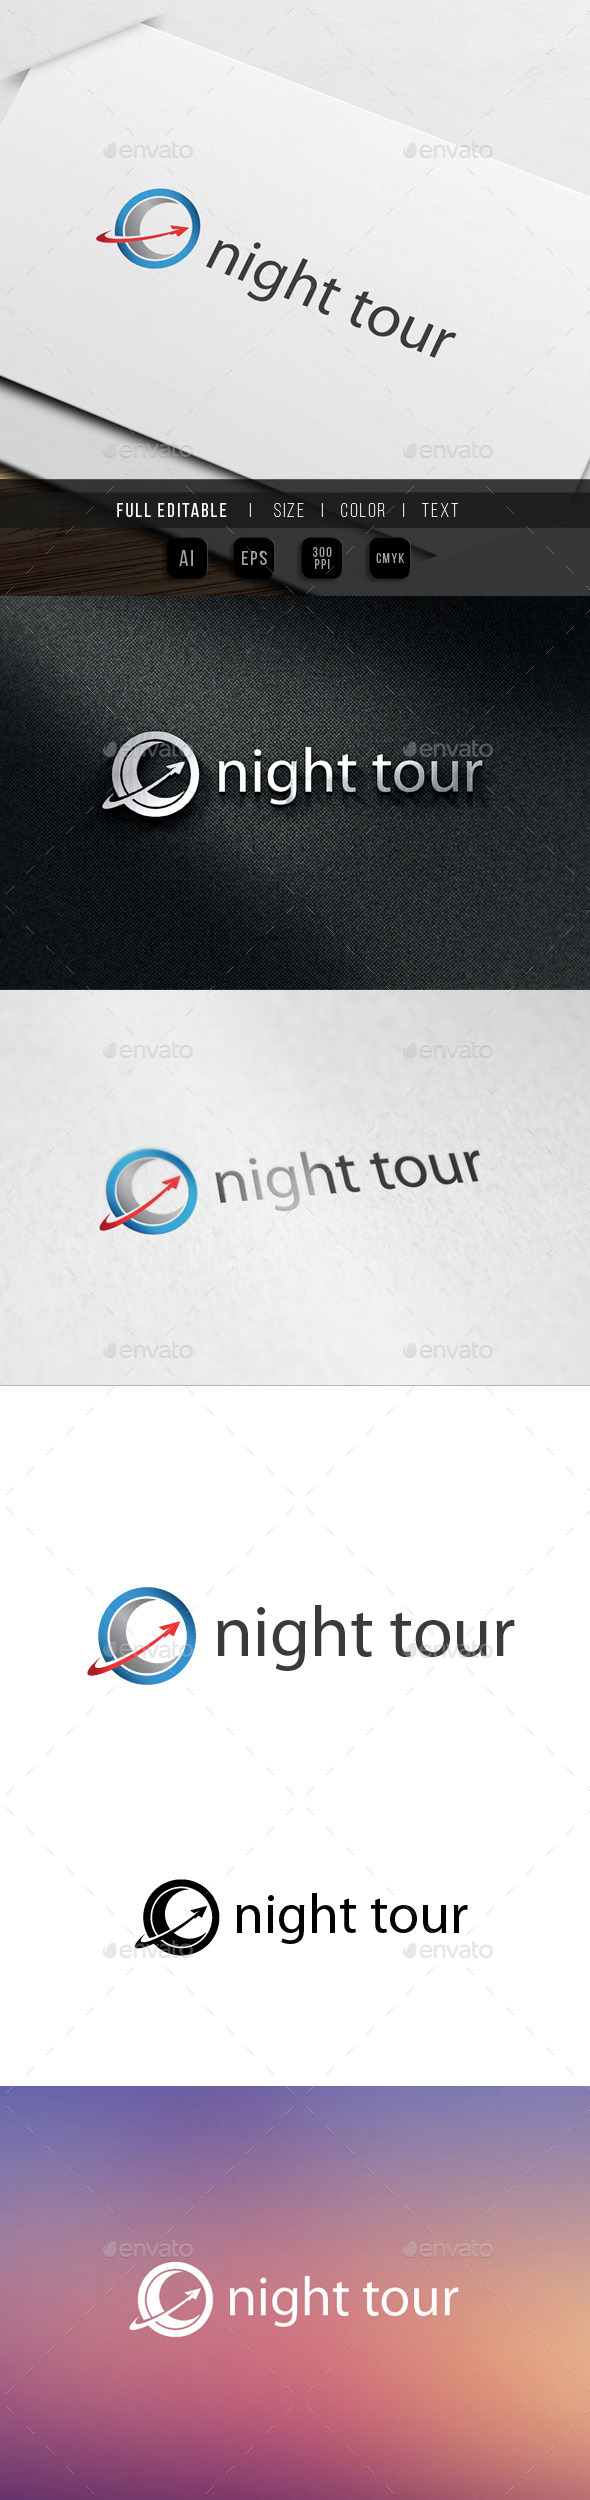 Night Tour Travel